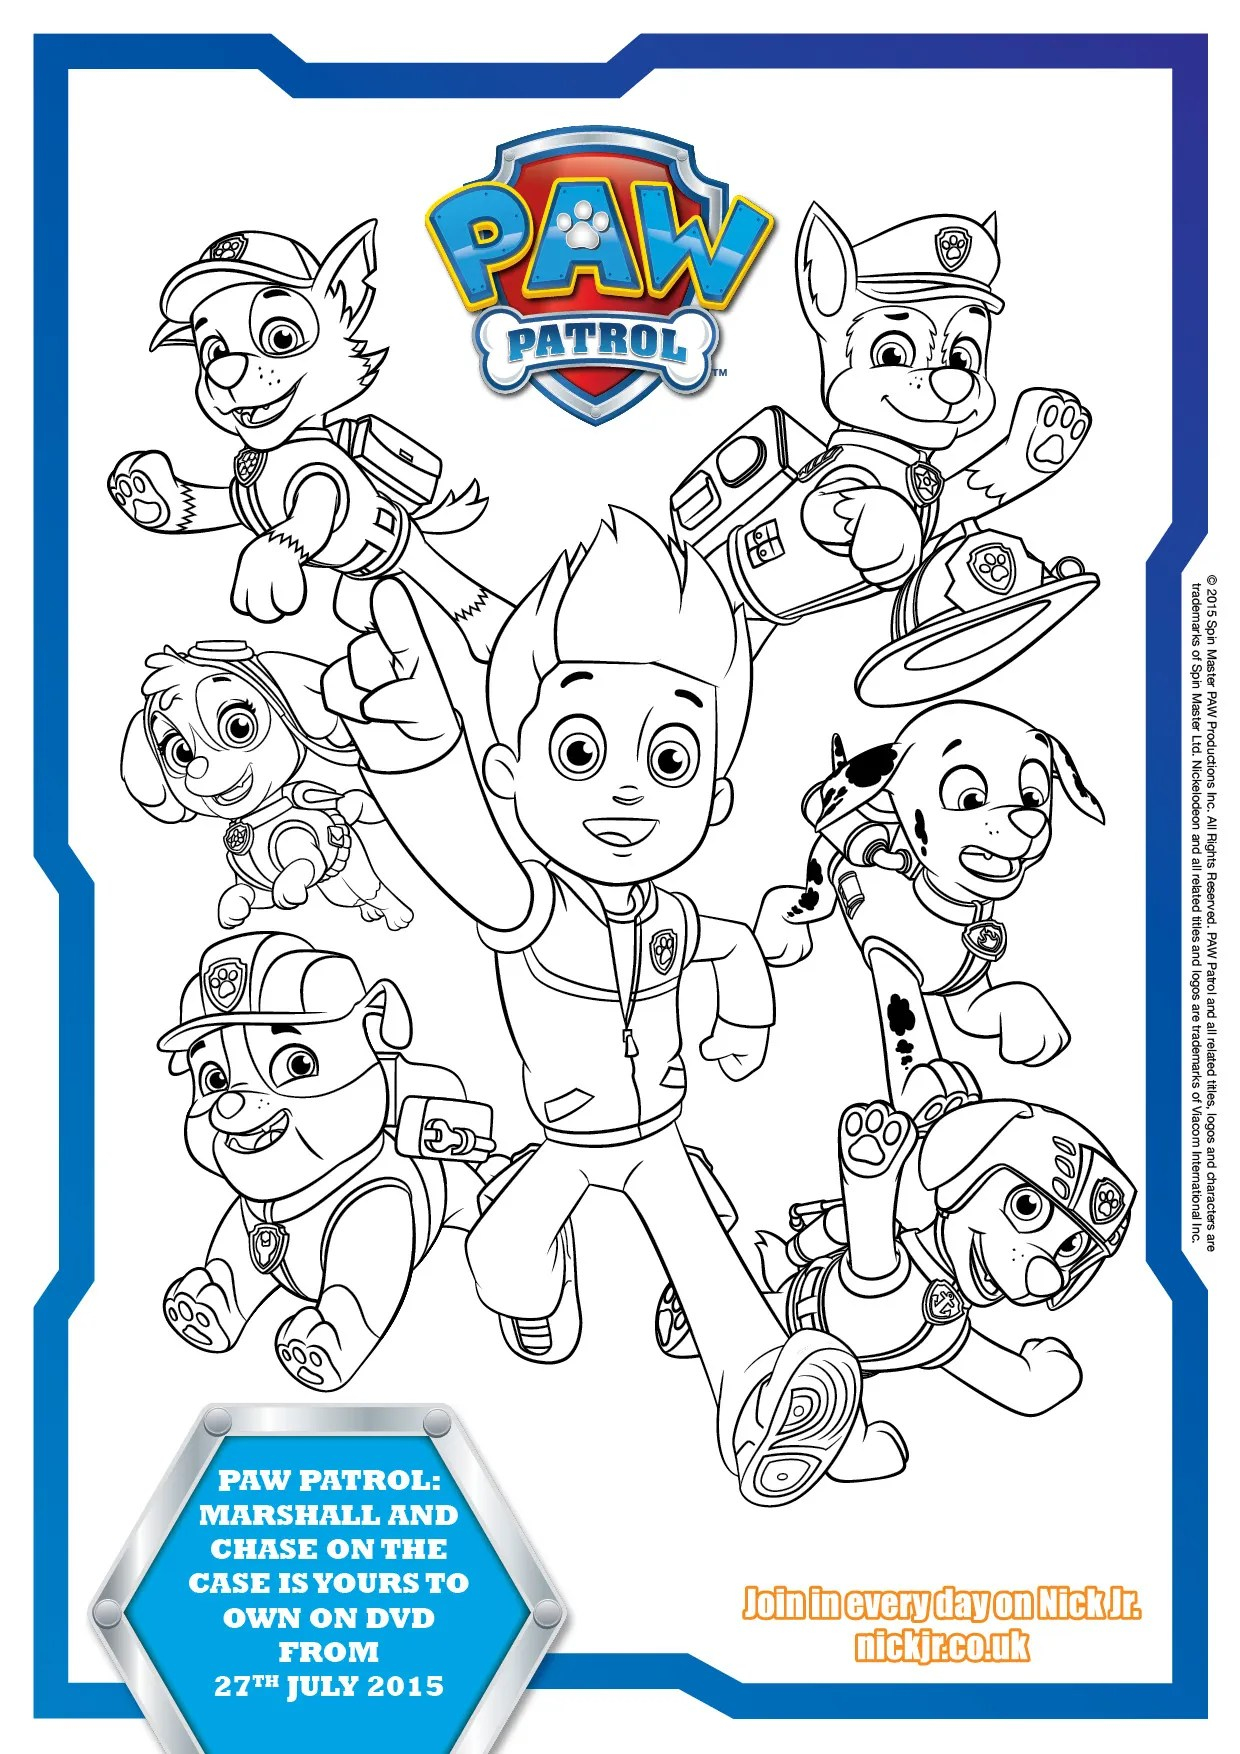 Paw patrol colouring page printable